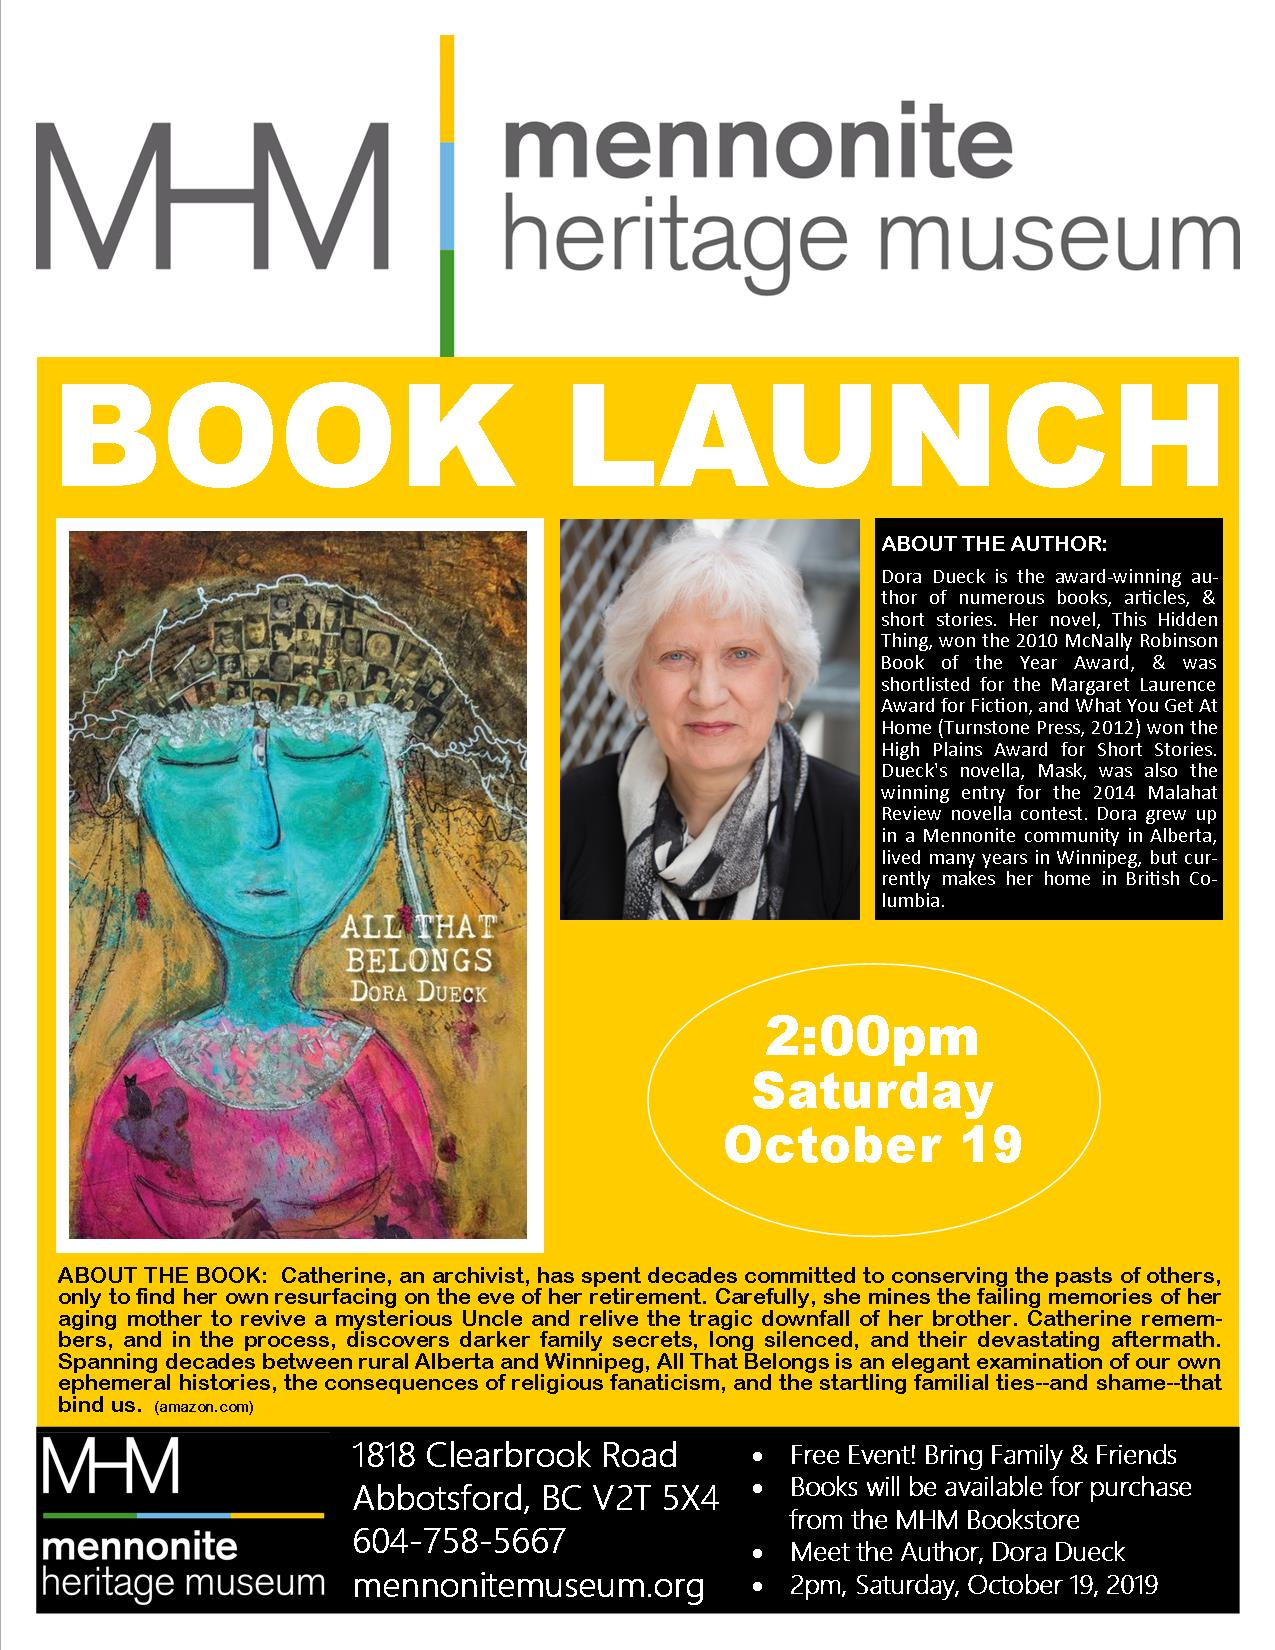 2019 10 19 MHM Book Launch Dora Dueck Poster Updated